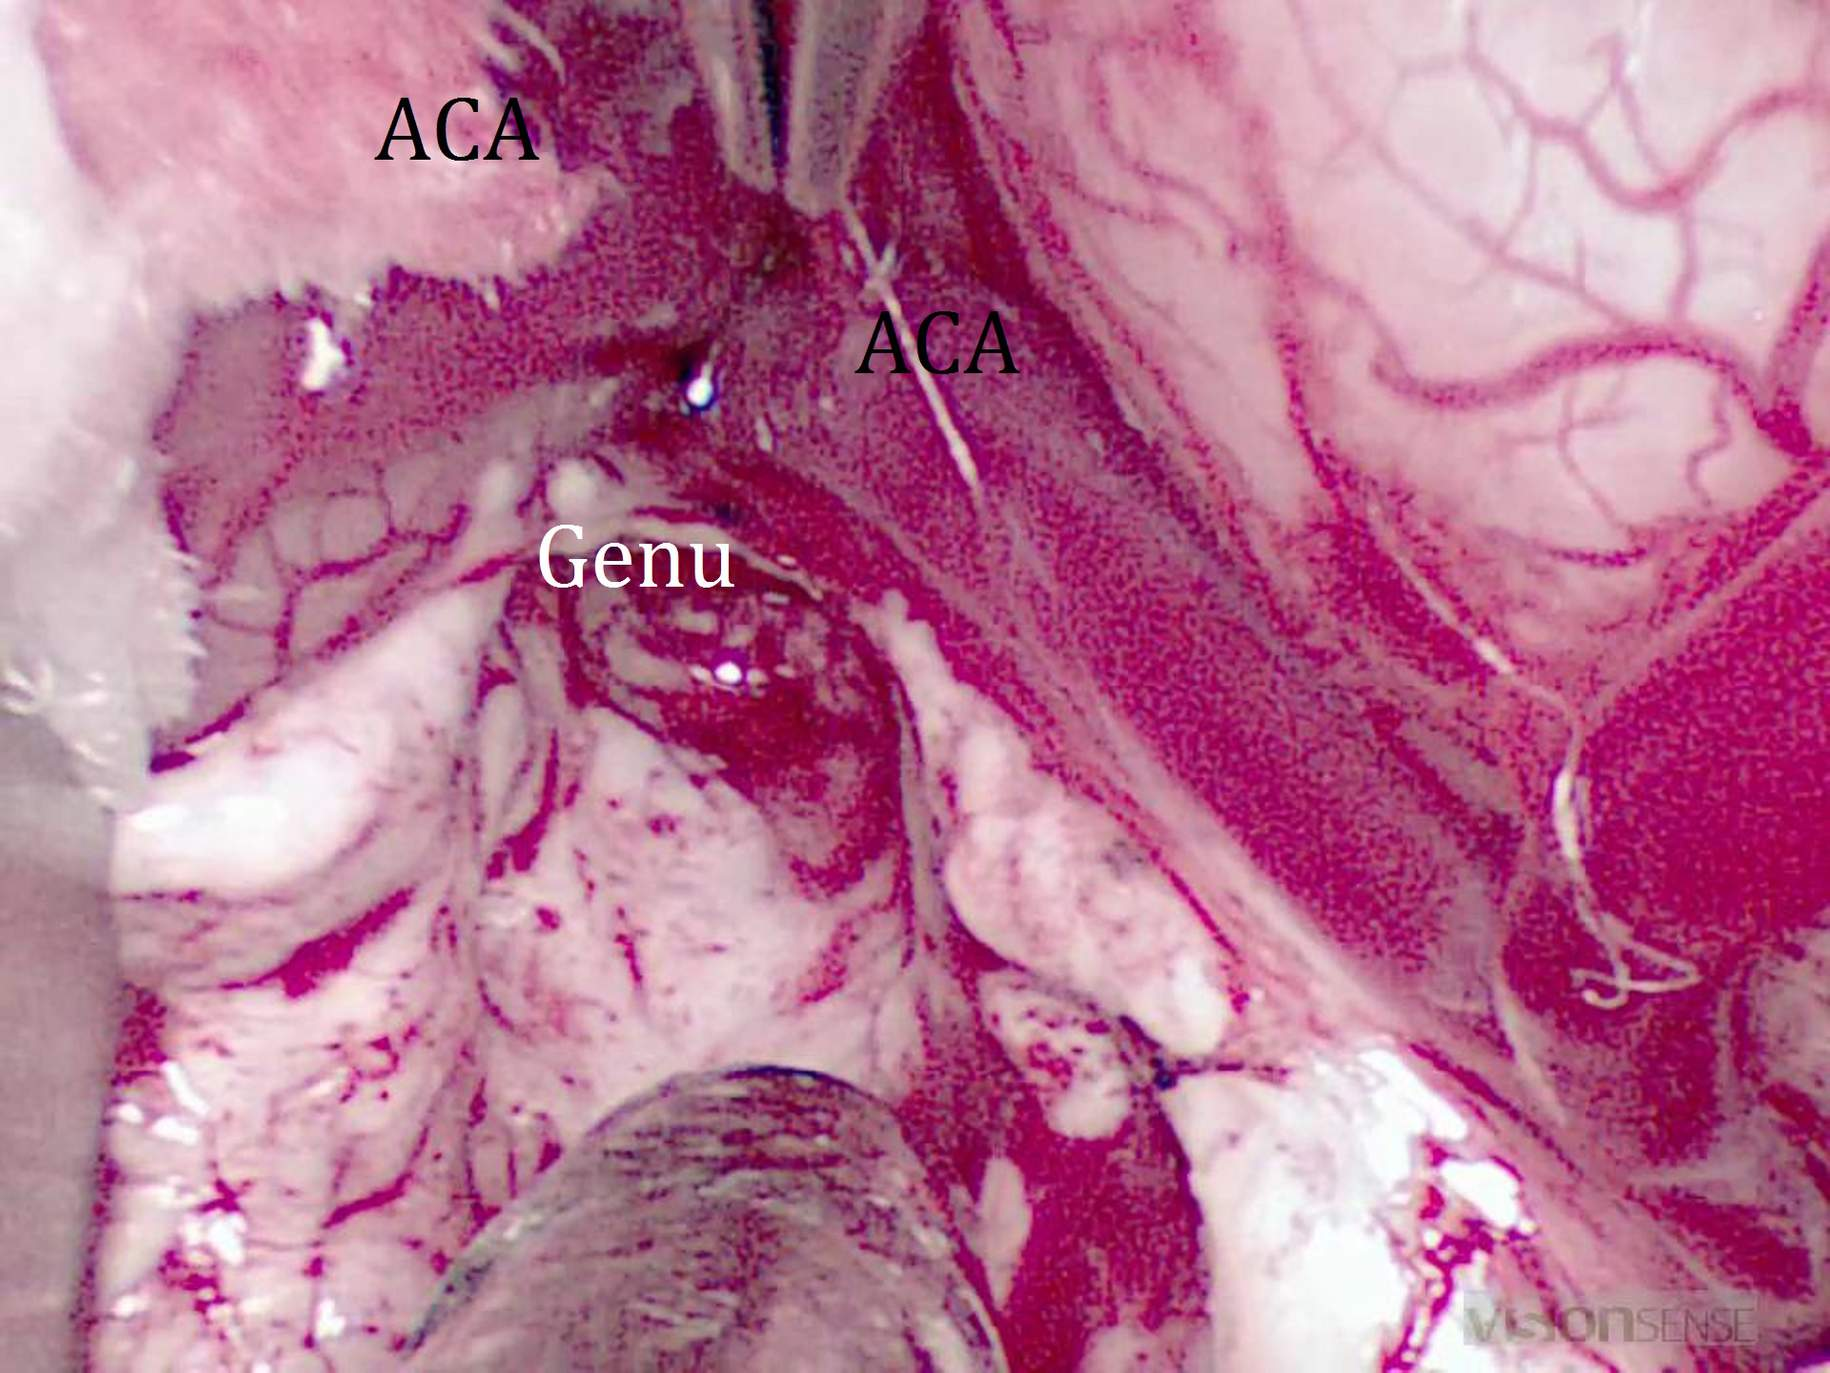 Figure 8: The genu of the corpus callosum follows inferior to the curvature of the anterior cerebral arteries (ACA,) which serve as good anatomical landmarks.